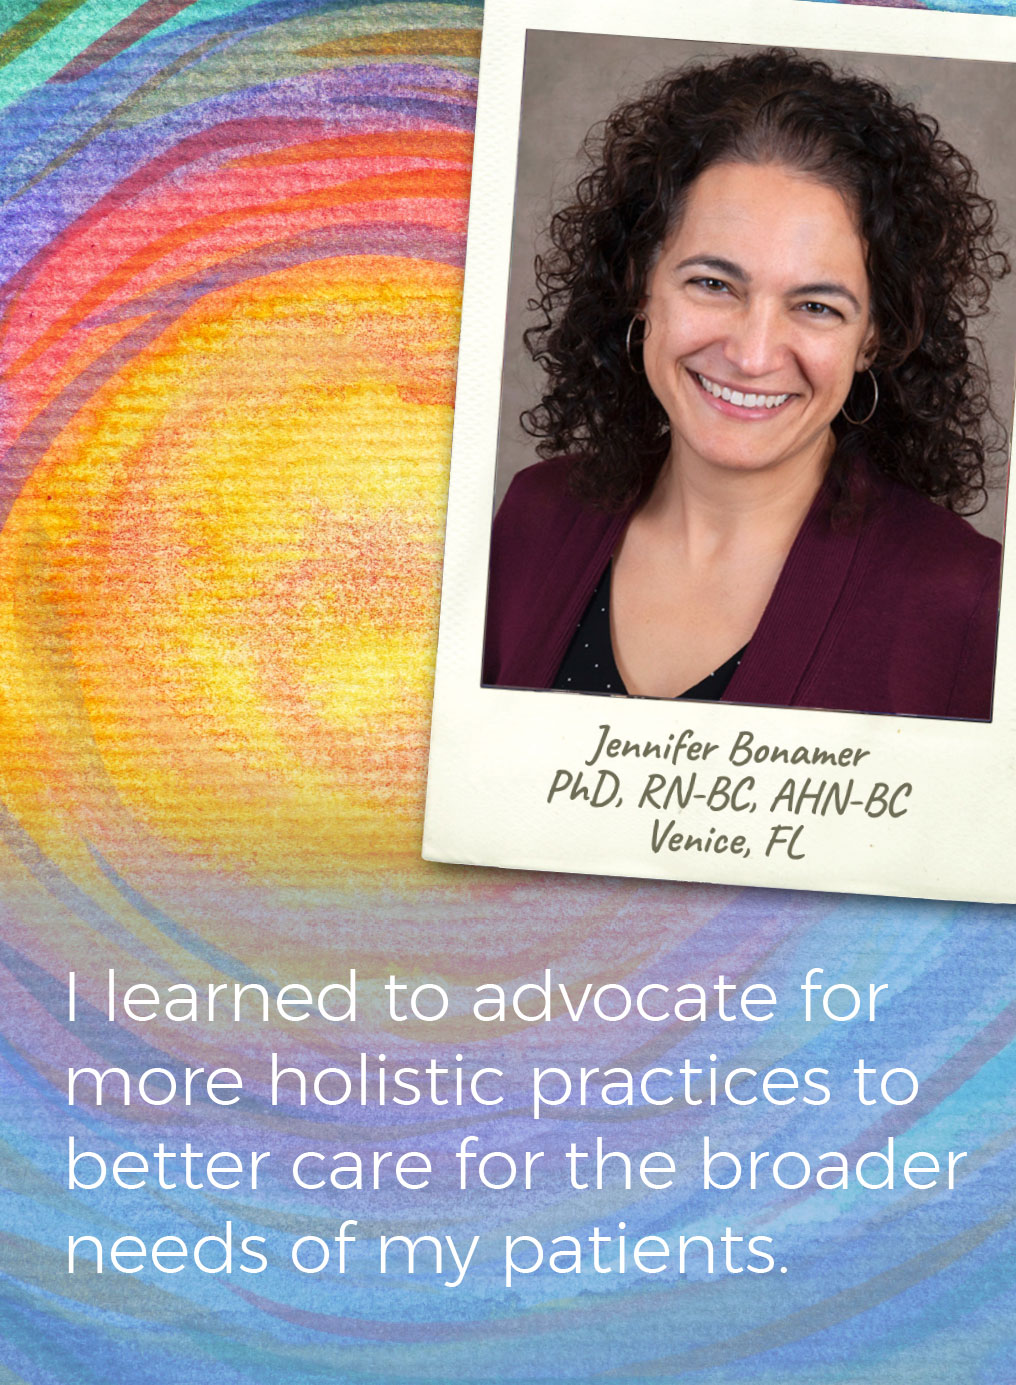 I learned to advocate for more holistic practices to better care for the broader needs of mu patients. Jennifer Bonamer PhD, RN-BC, AHN-BC, Venice, FL